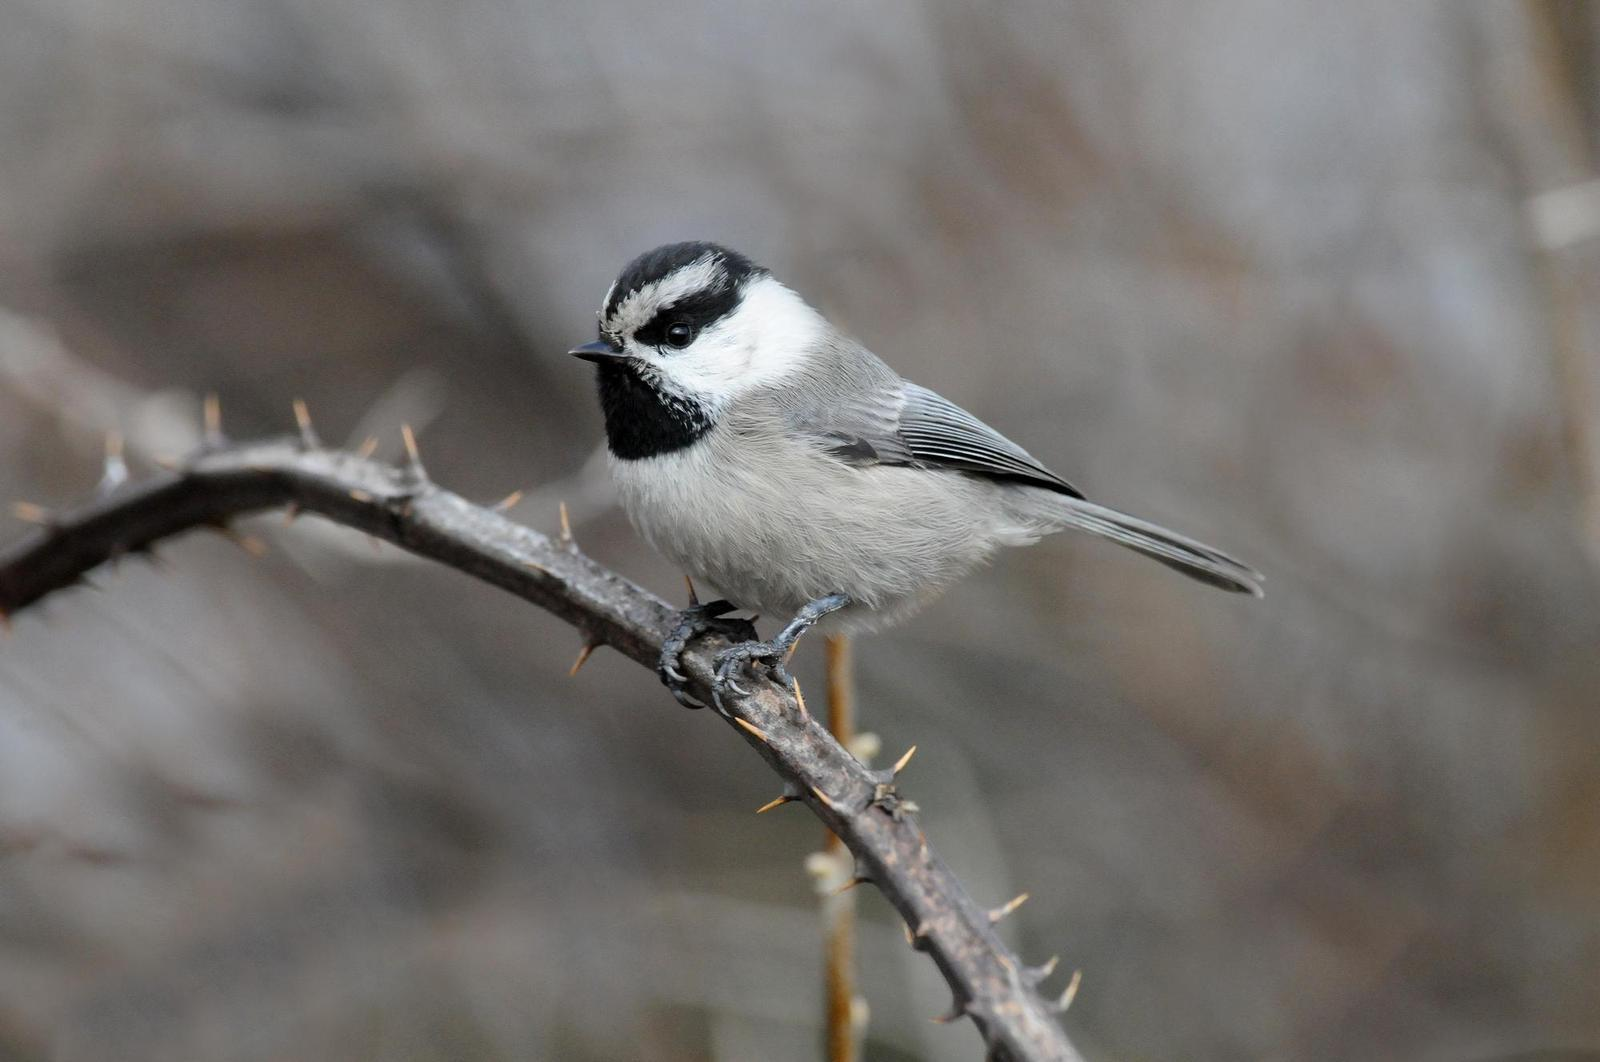 Mountain Chickadee Photo by Steven Mlodinow